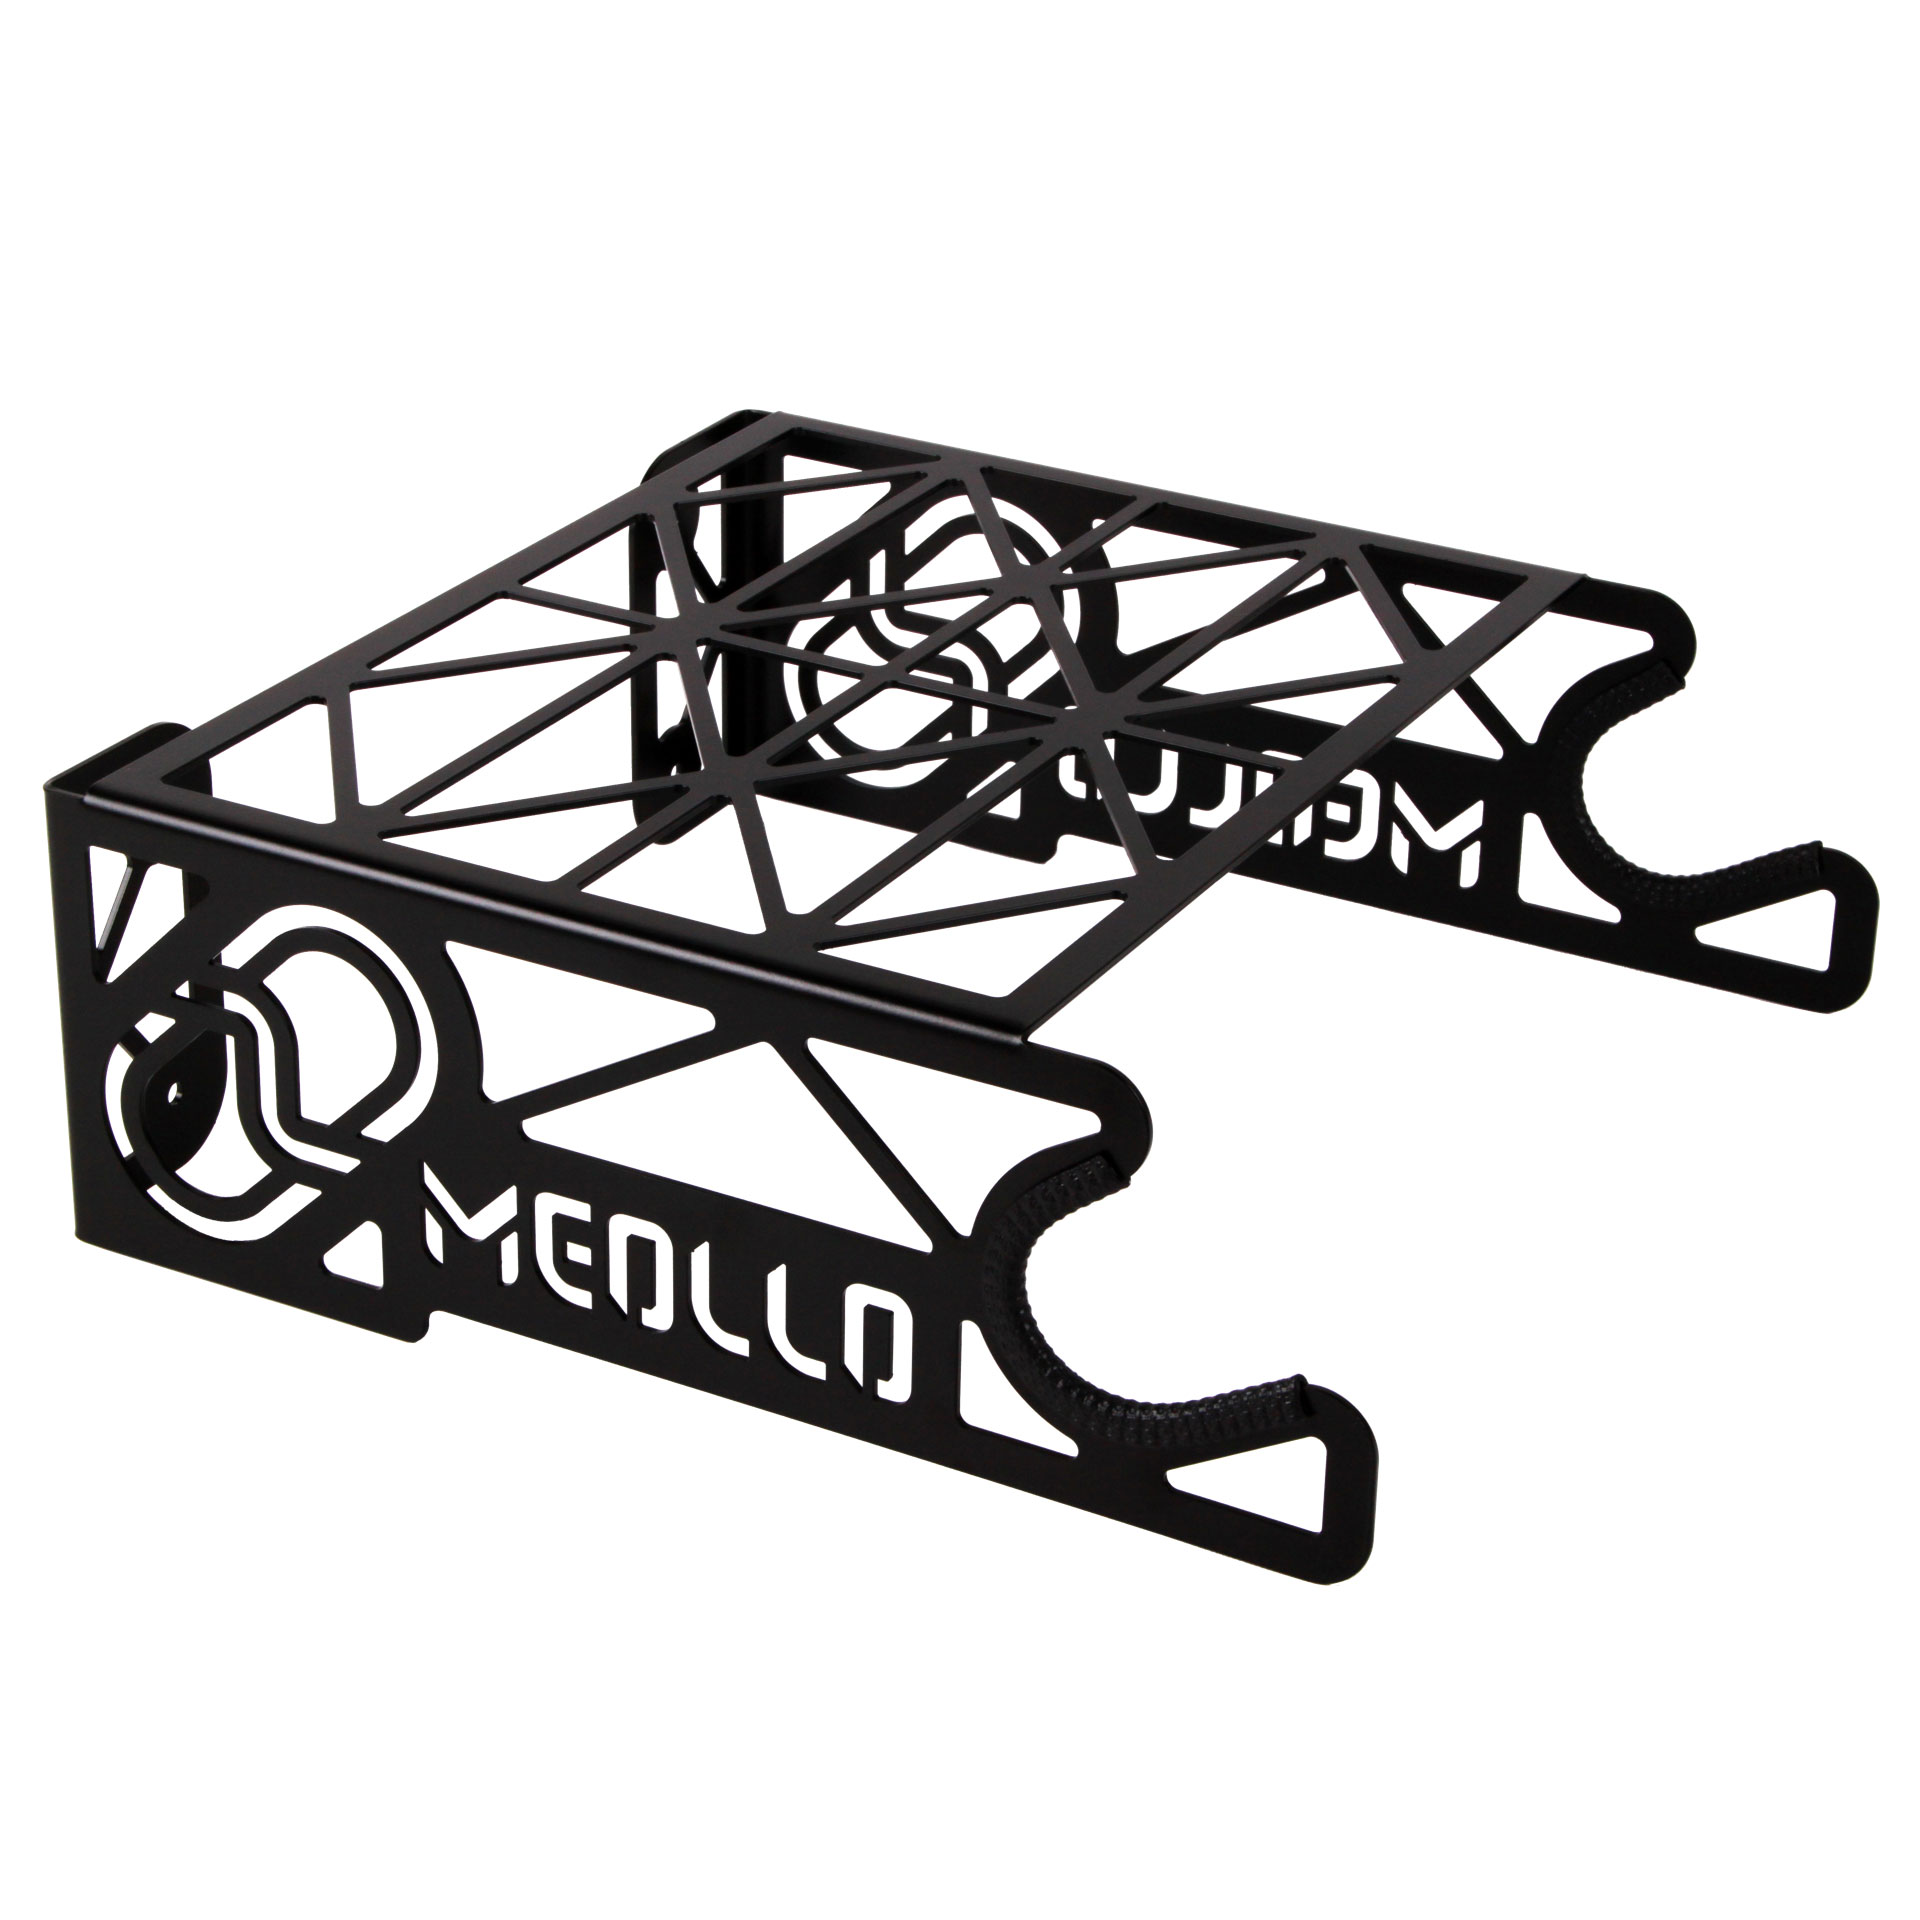 meollo-wall-rack